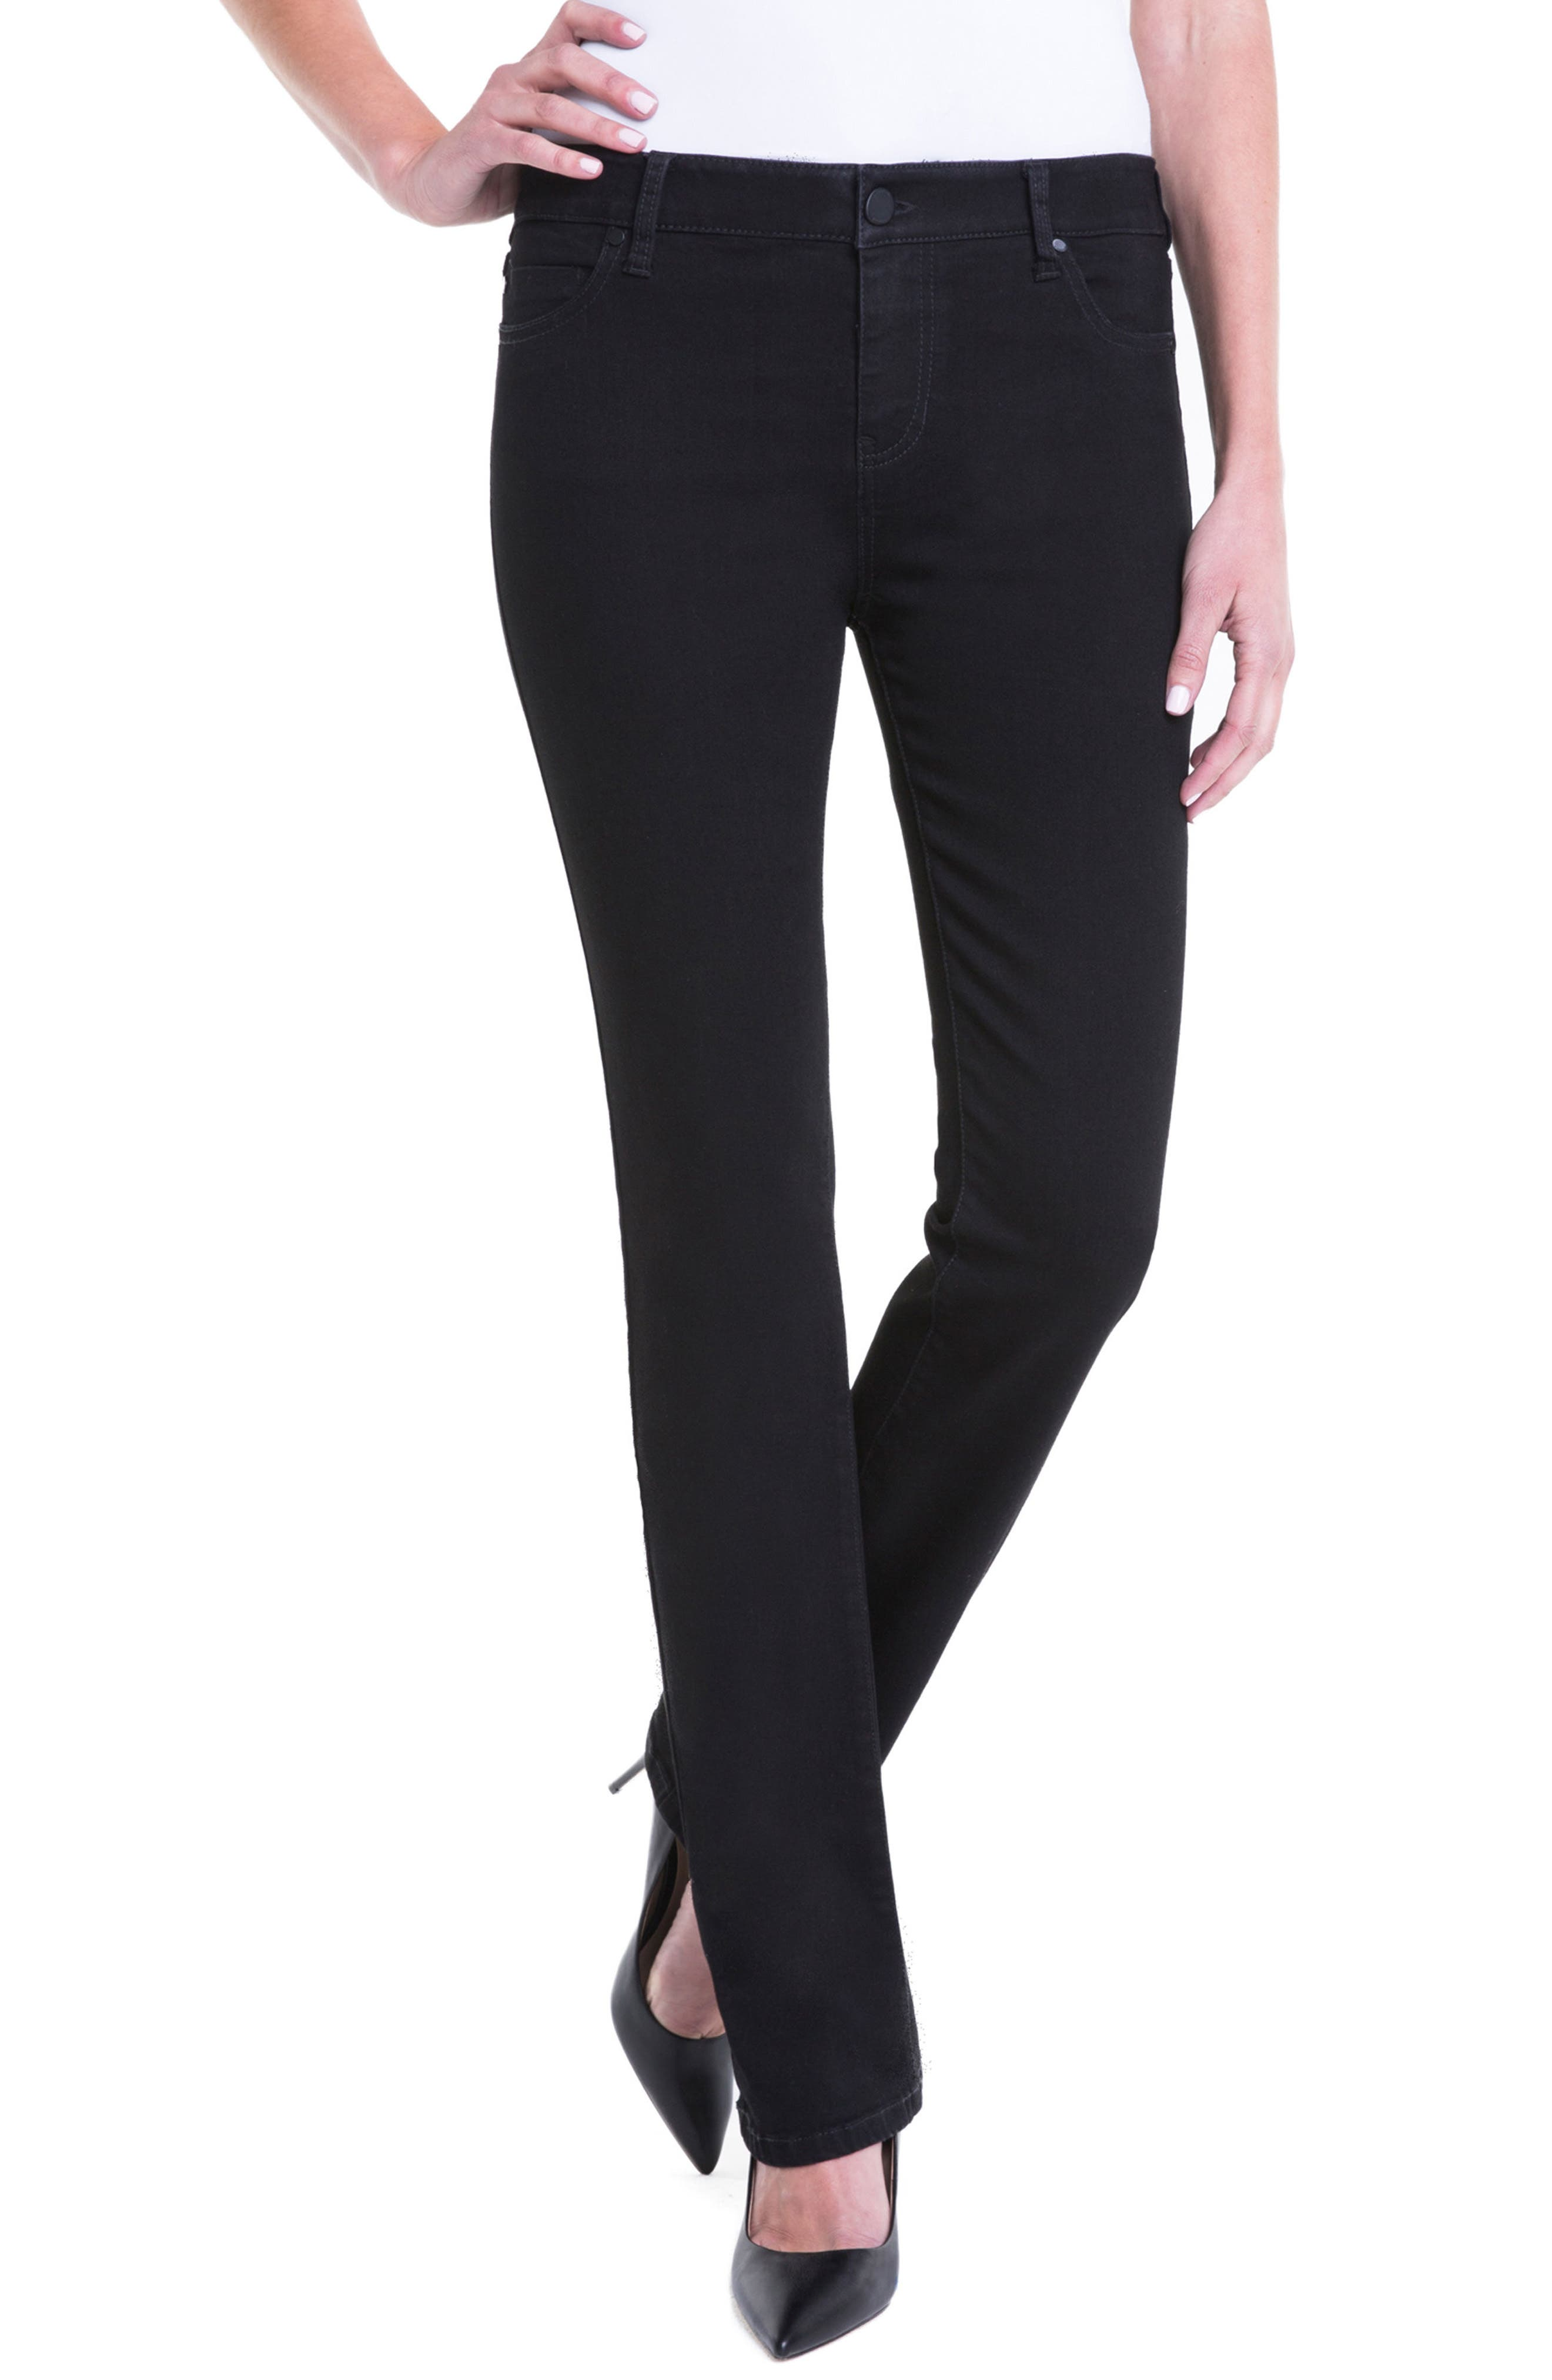 Liverpool Jeans Company Sadie Mid Rise Stretch Straight Jeans (Regular & Petite)